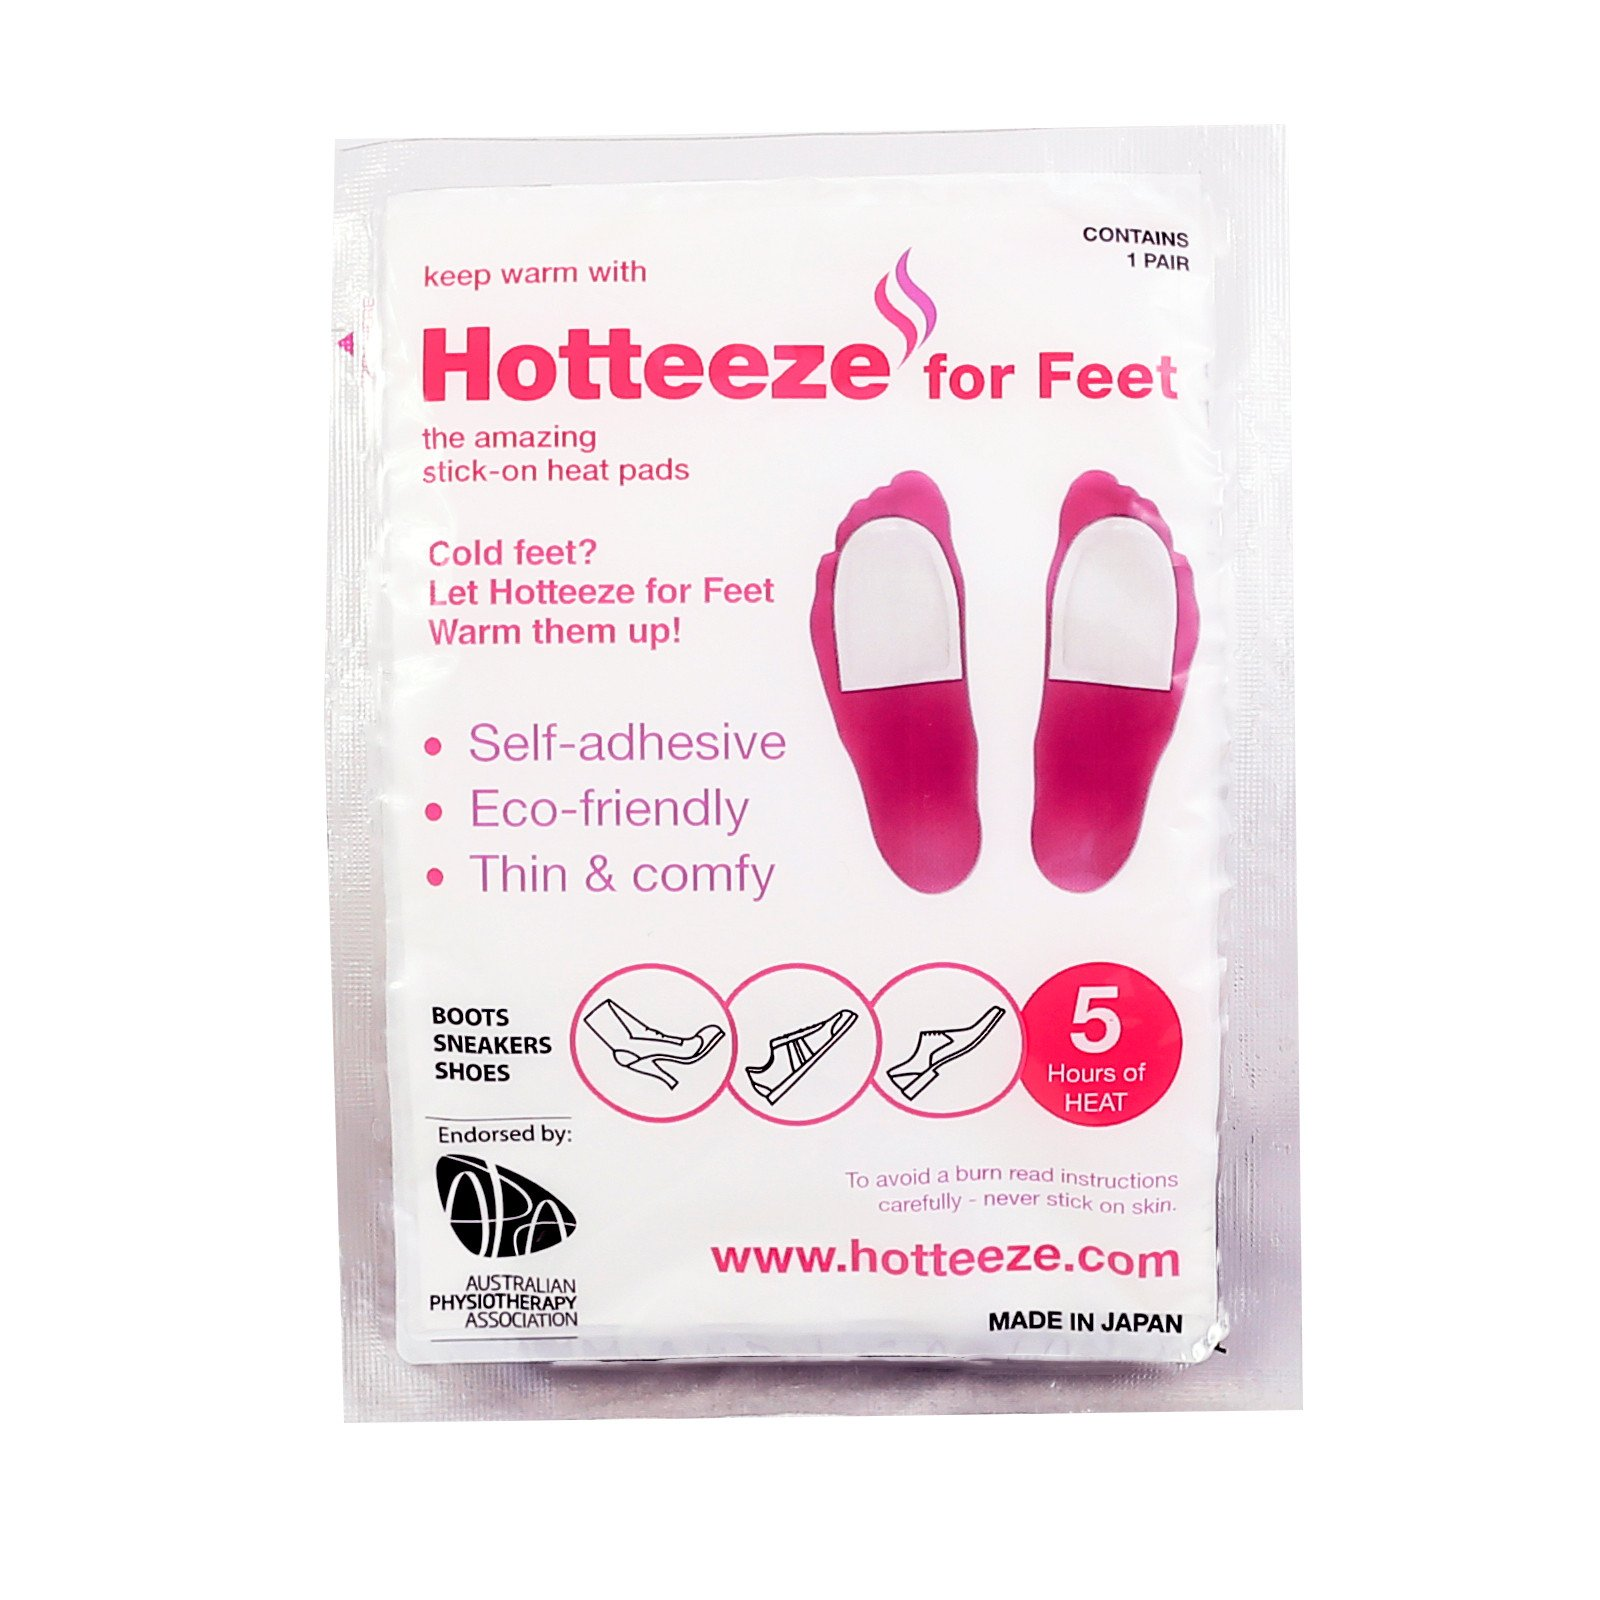 Hotteeze Foot Warmer